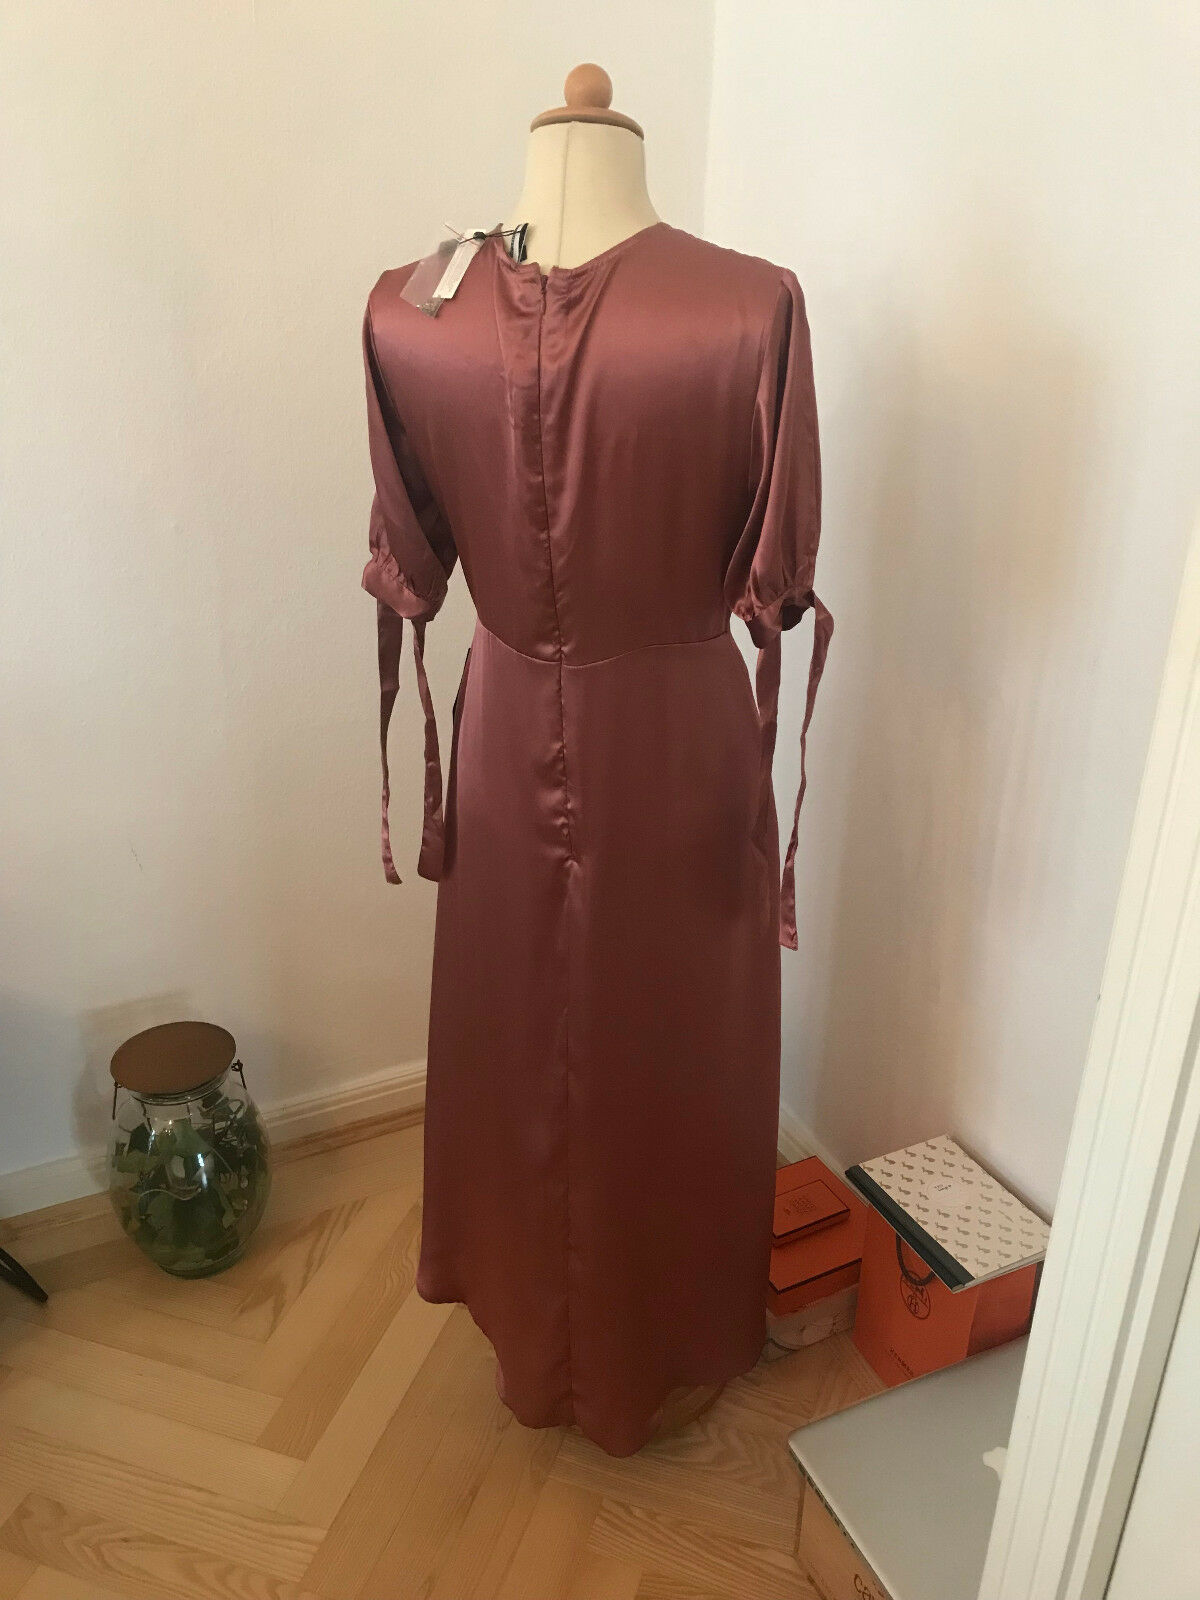 Topshop dress, embroidery NEW, 38, blogger, sold out out out 1c9186